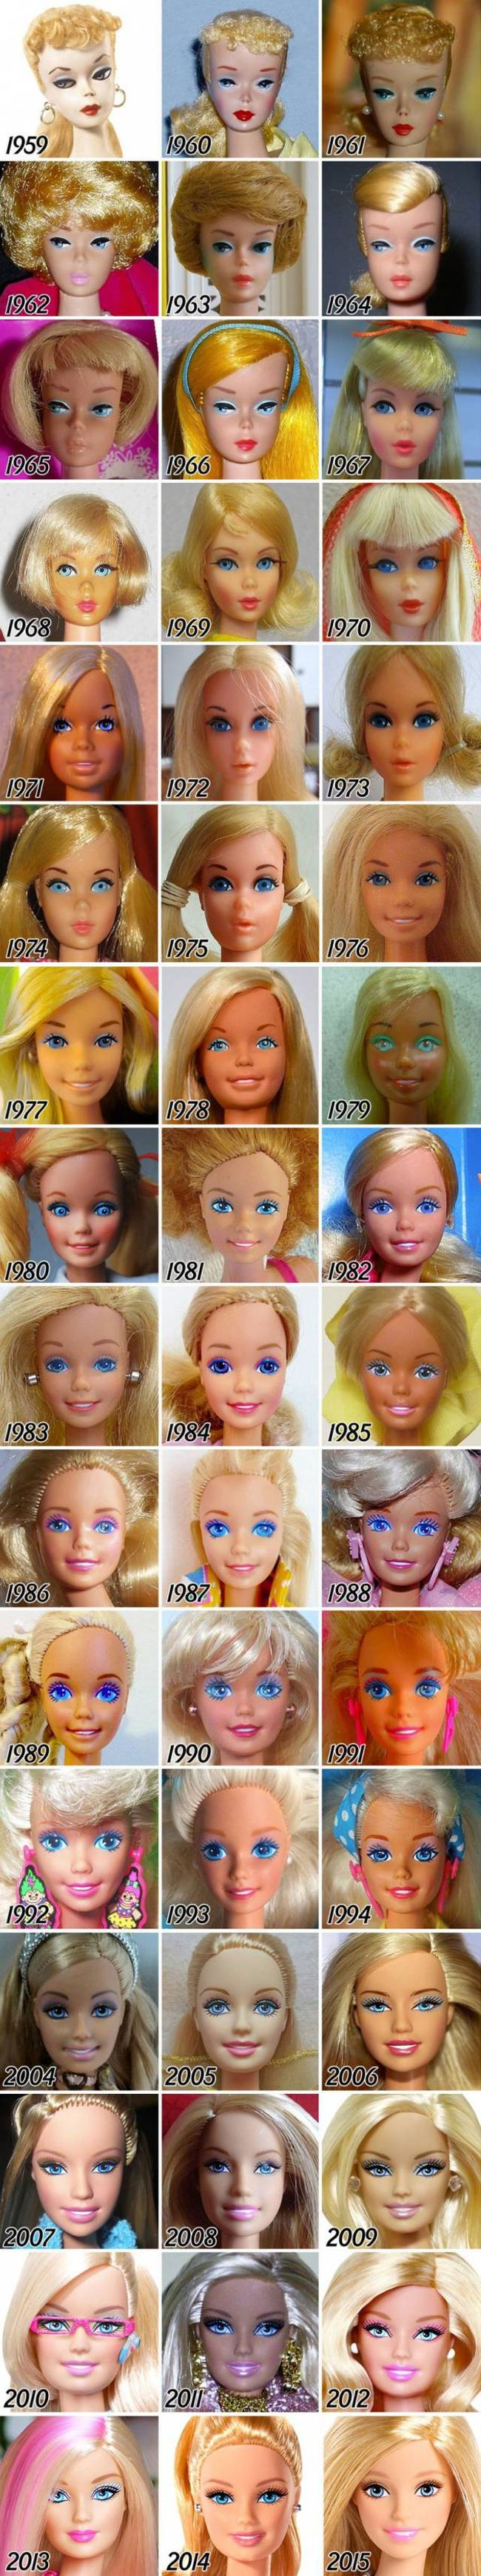 Looking Back On The Evolution Of Barbie